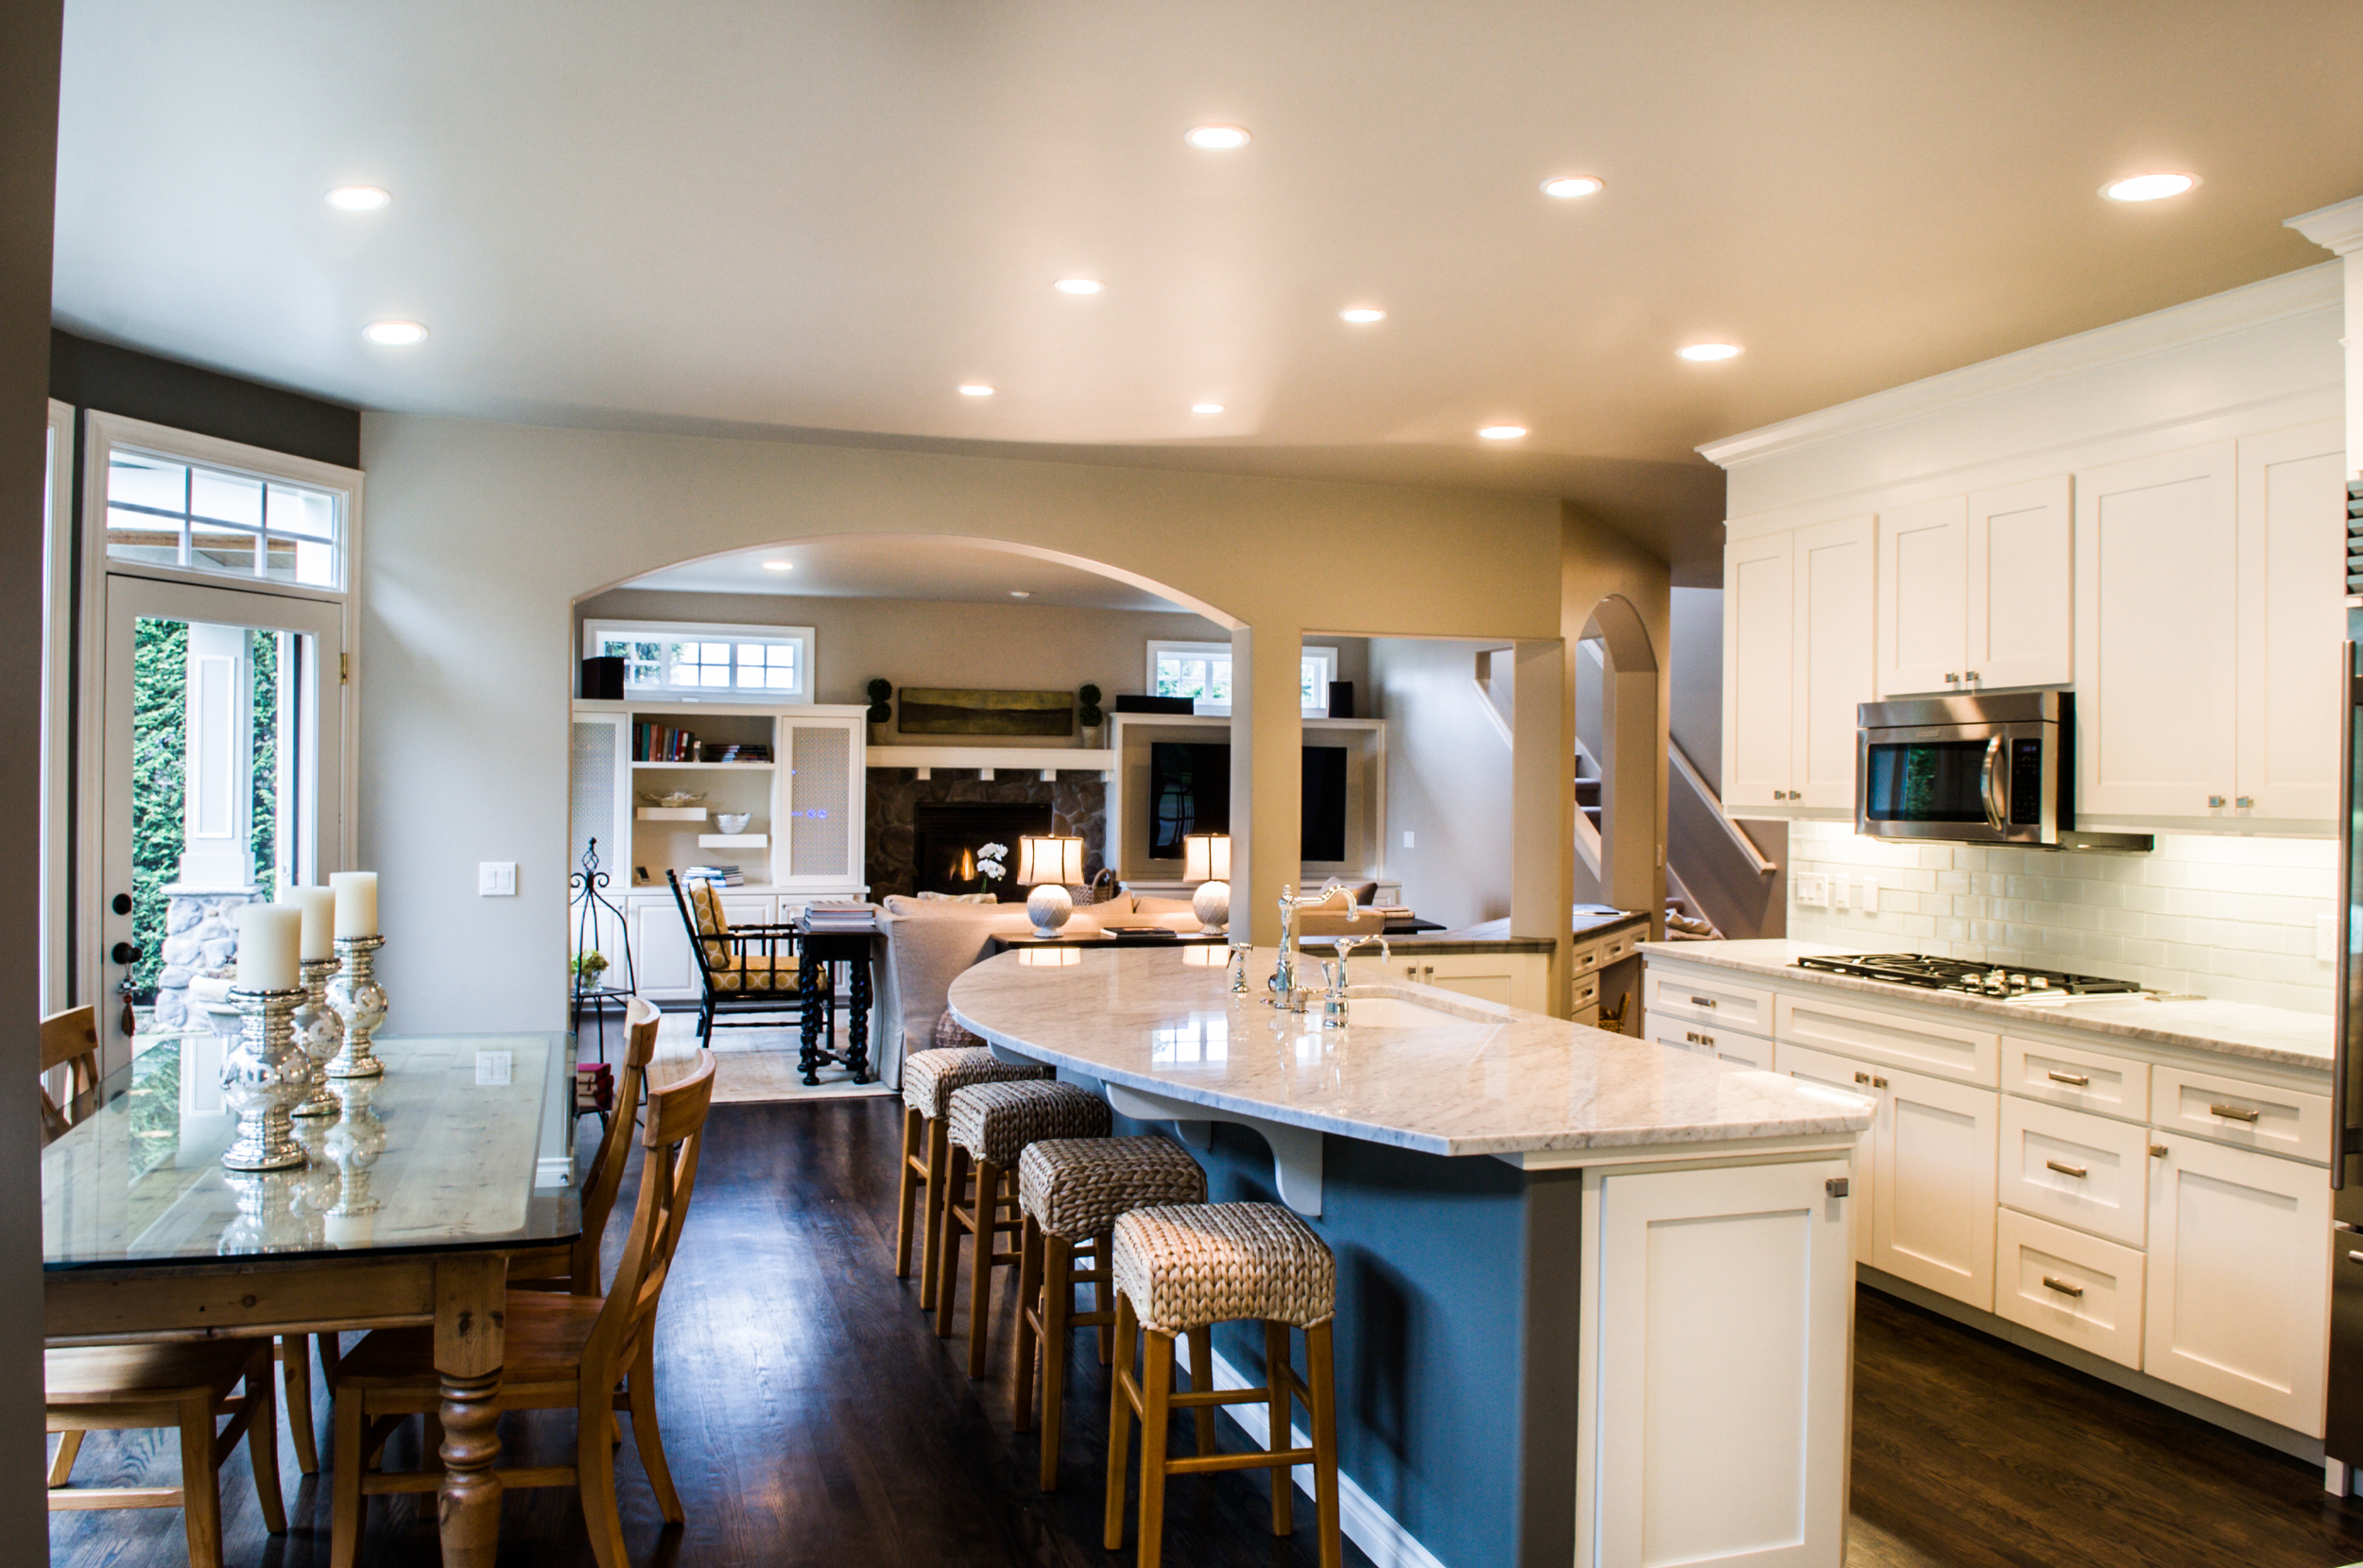 The kitchen nook and Island create ample seating.   Kitchen looks clean and inviting.